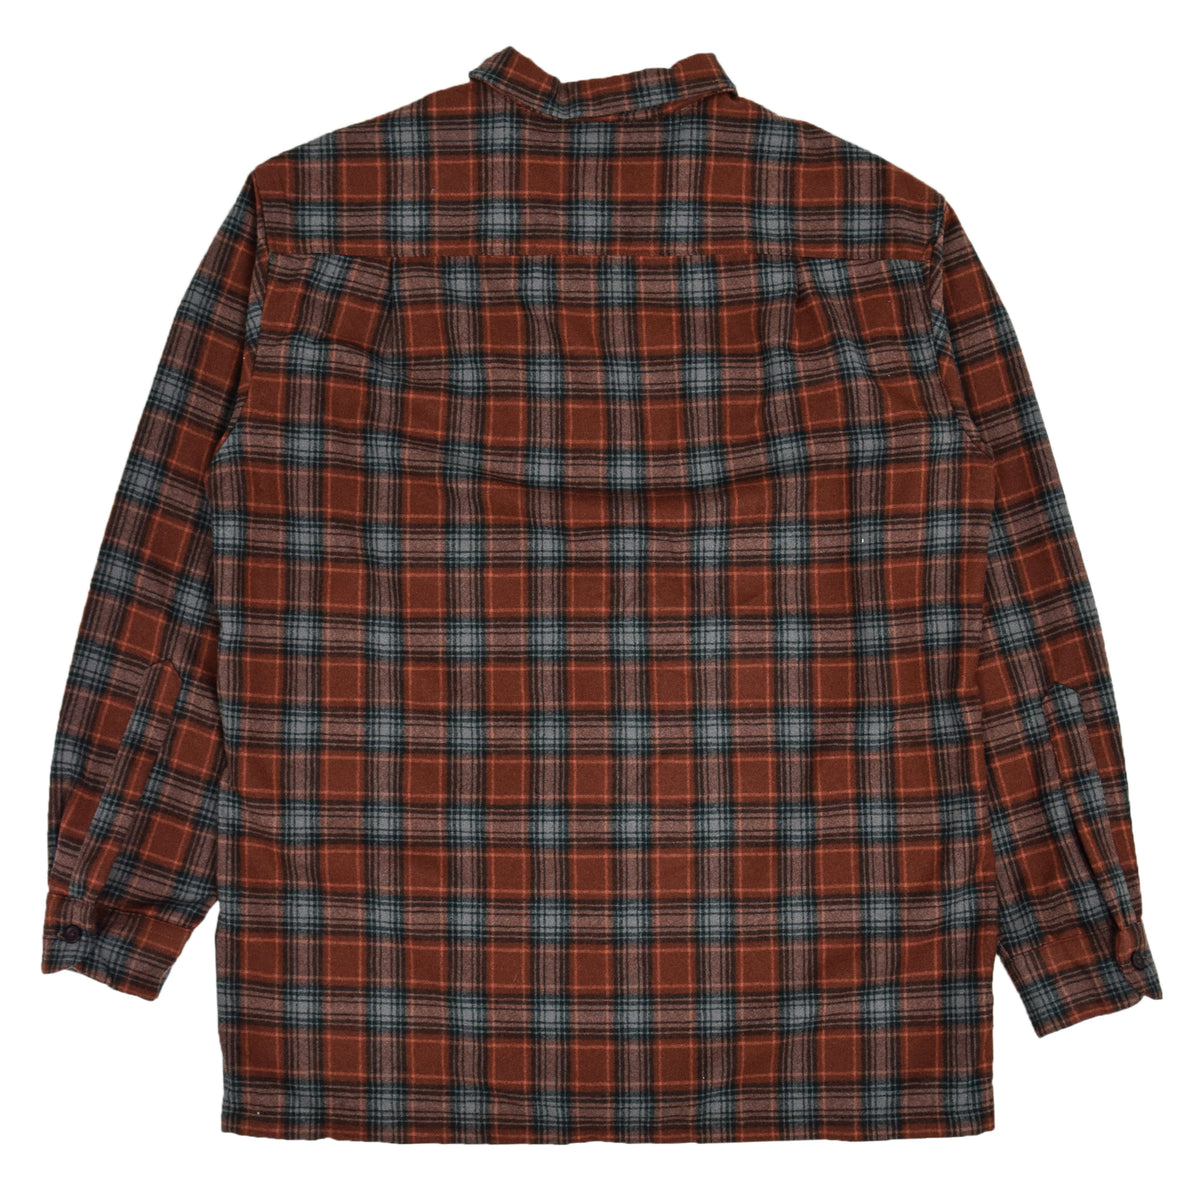 Pendleton Plaid Long Sleeve Virgin Wool Check Board Shirt L BACK